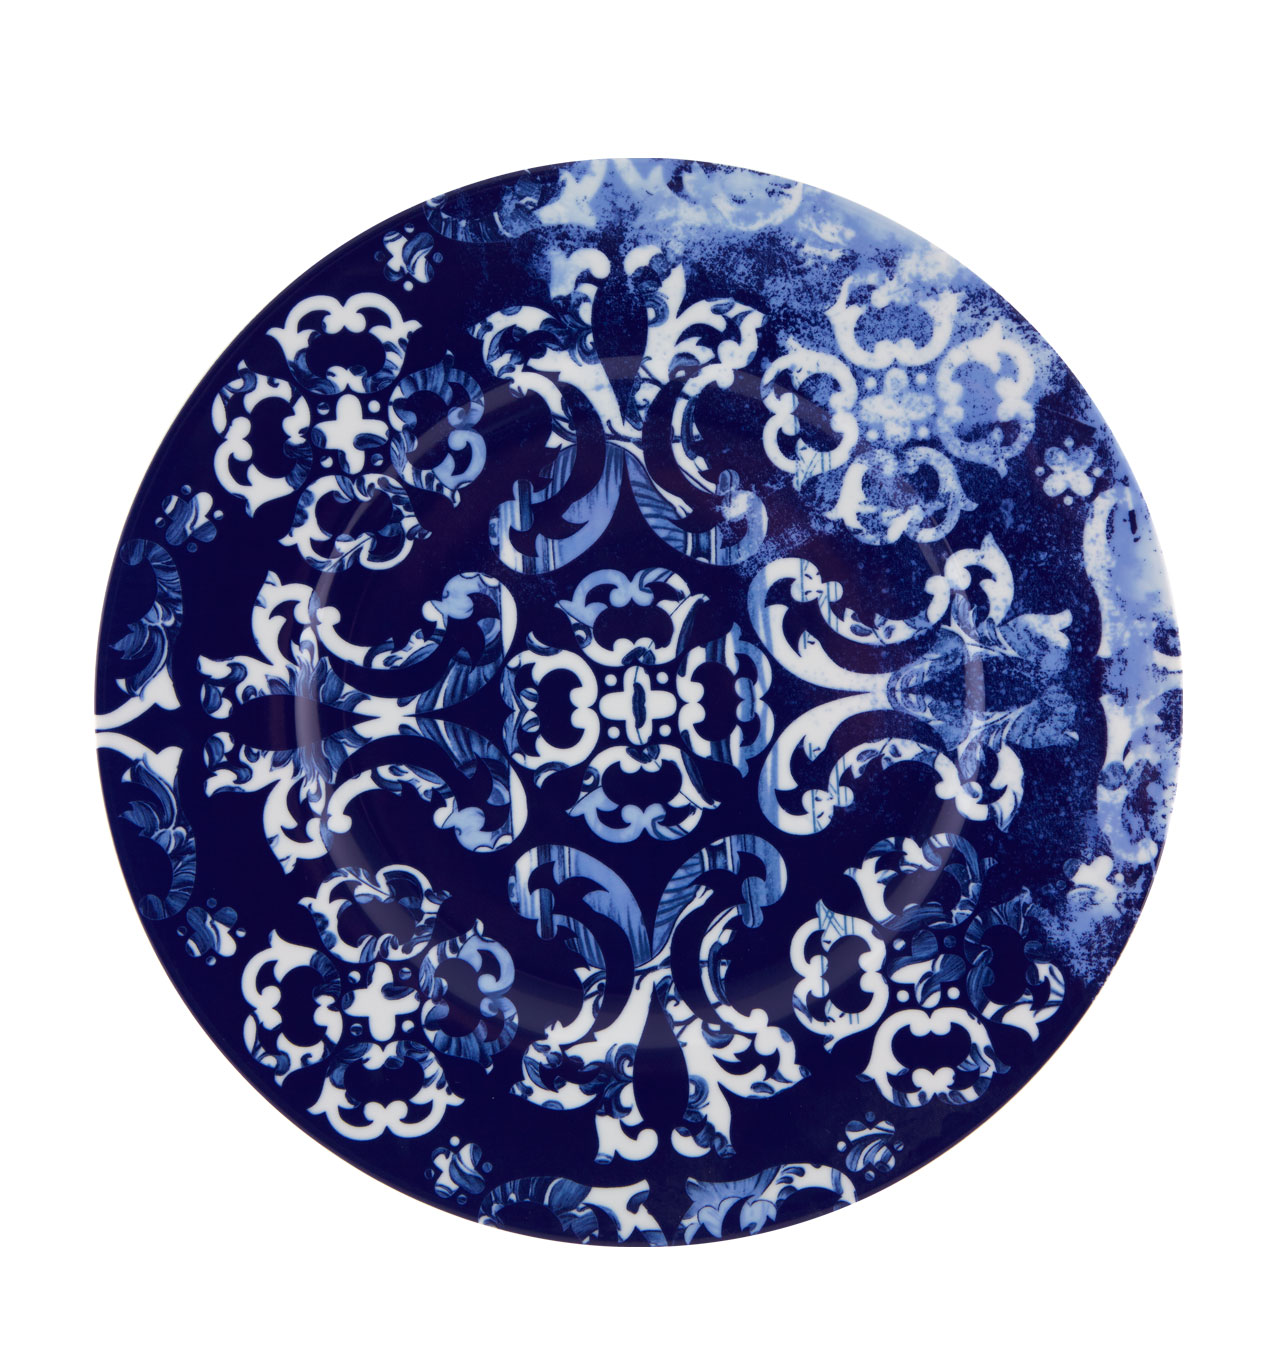 Vista Alegre Collection Timeless charger plate